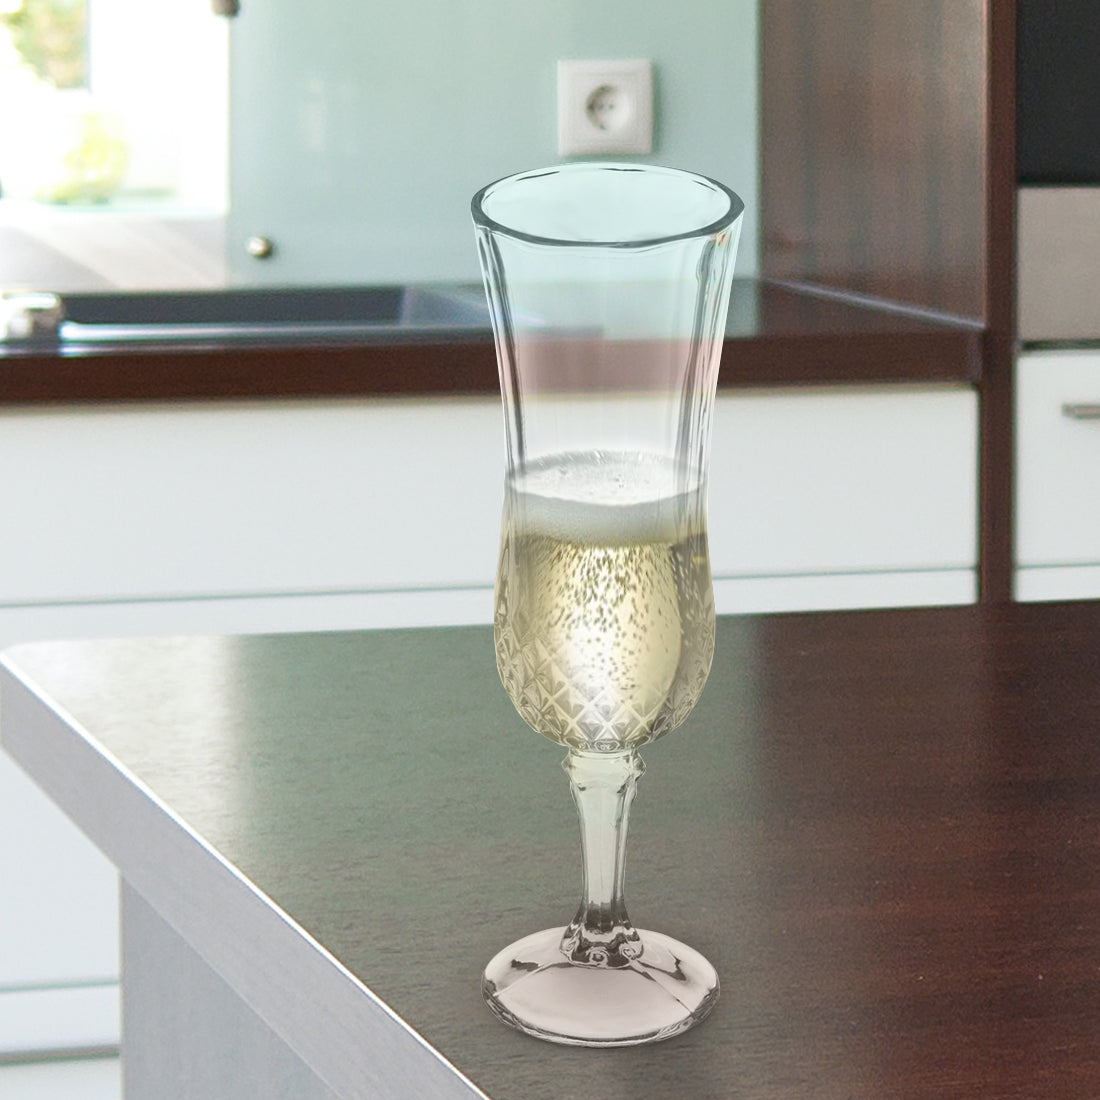 Diamond Goblet - Champagne Glass 180ml - Set Of 4 Pcs By Wonderchef